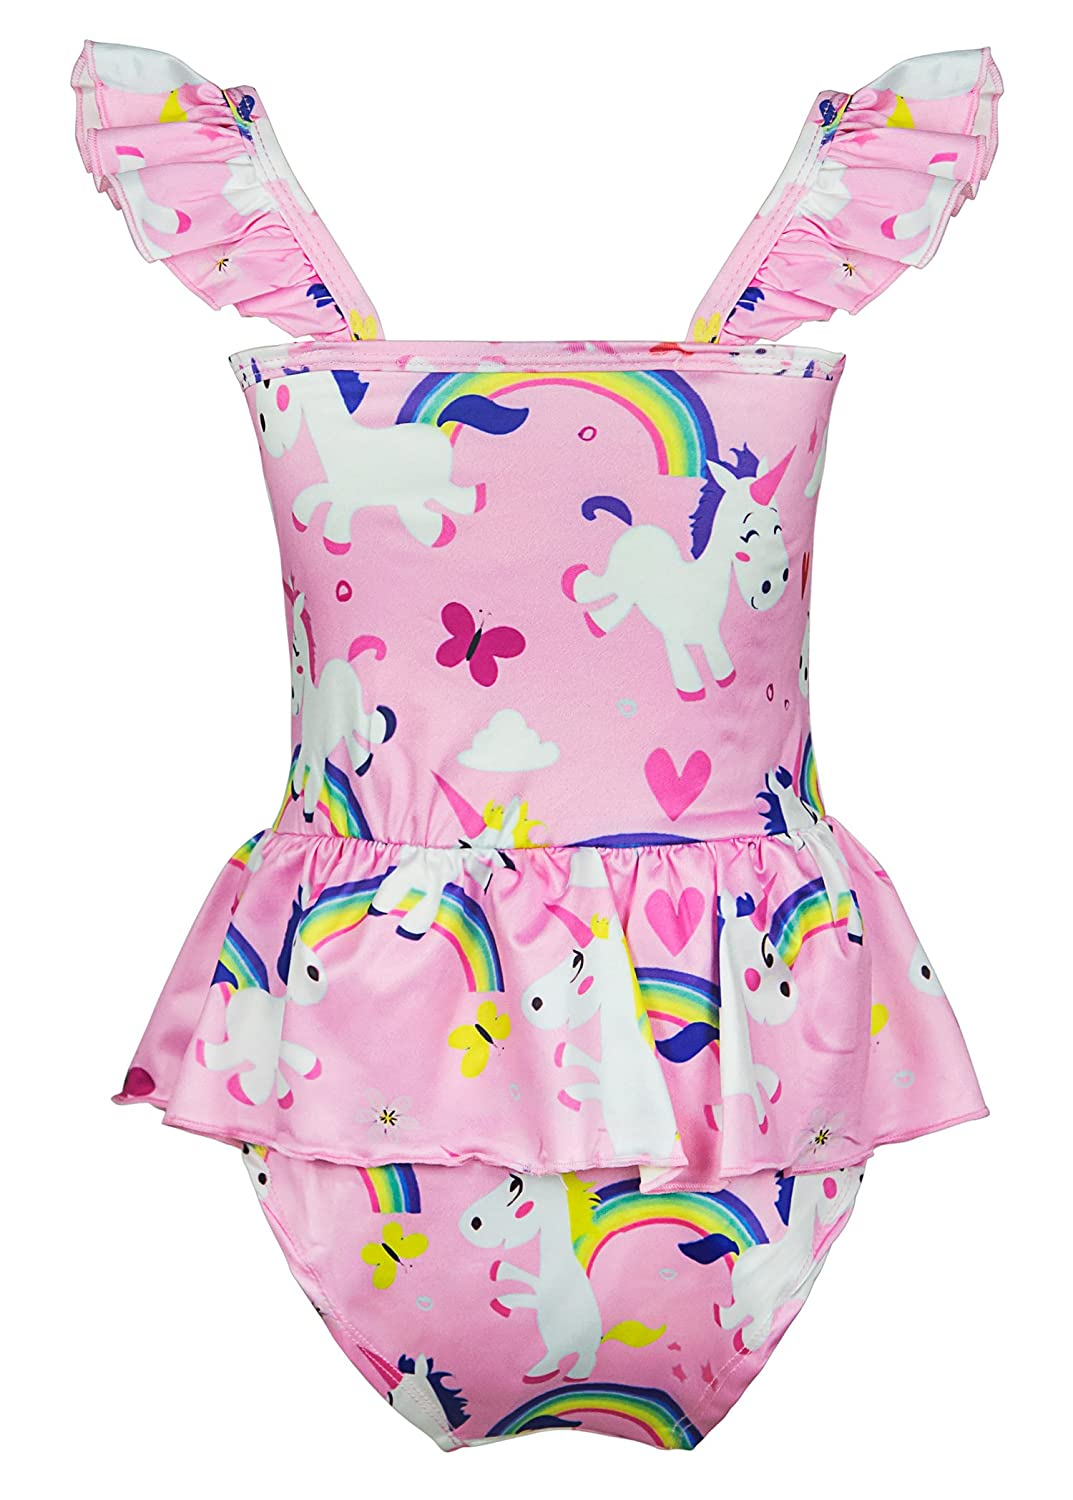 9eb10883c0 ... Wenge Girls Rainbow Unicorn Swimsuit Baby Unicorn Print Swimsuit-One  Piece Swimwear Bathing Suit Bikinis